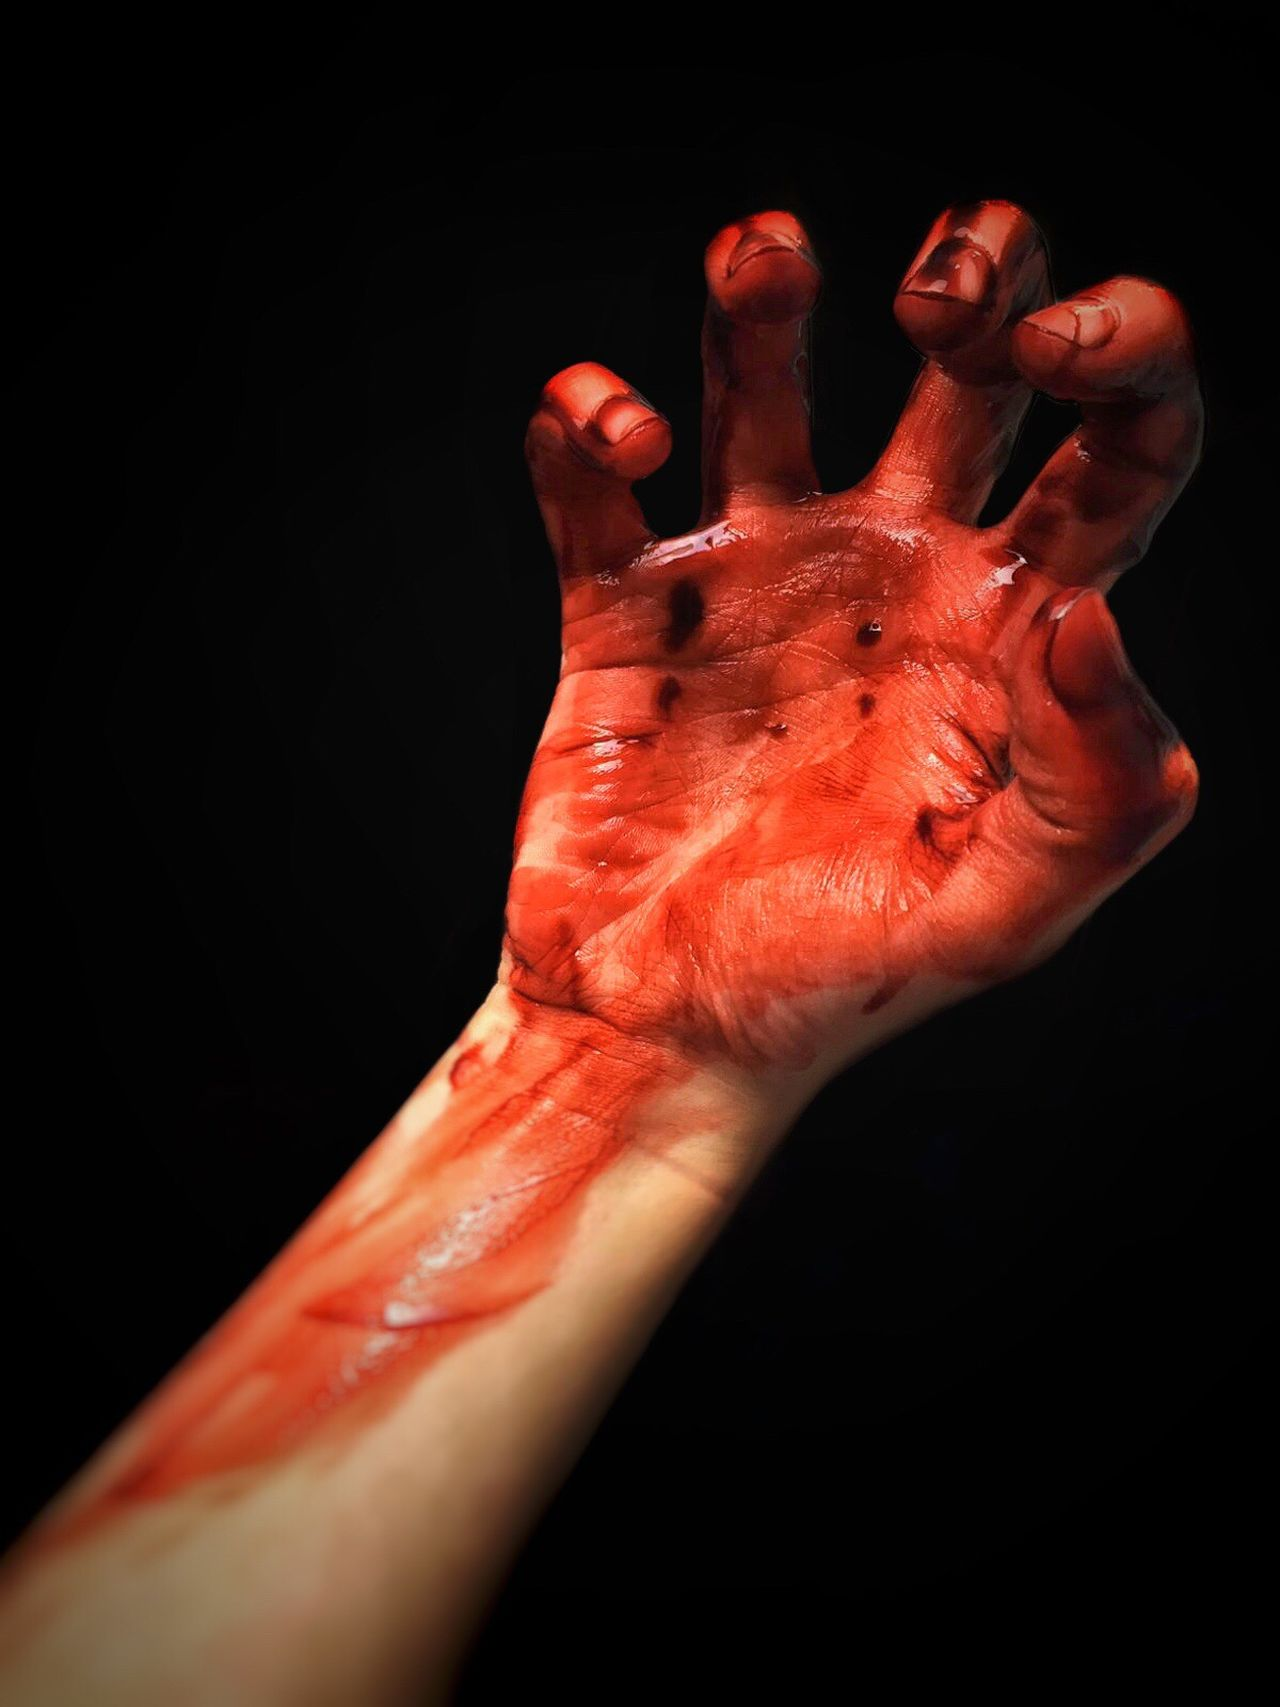 Human Hand Blood Human Body Part Red Physical Injury Damaged Human Blood Studio Shot Human Finger Spooky Shock Close-up One Person Pain Palm Black Background Adults Only Wound People Stage Make-up